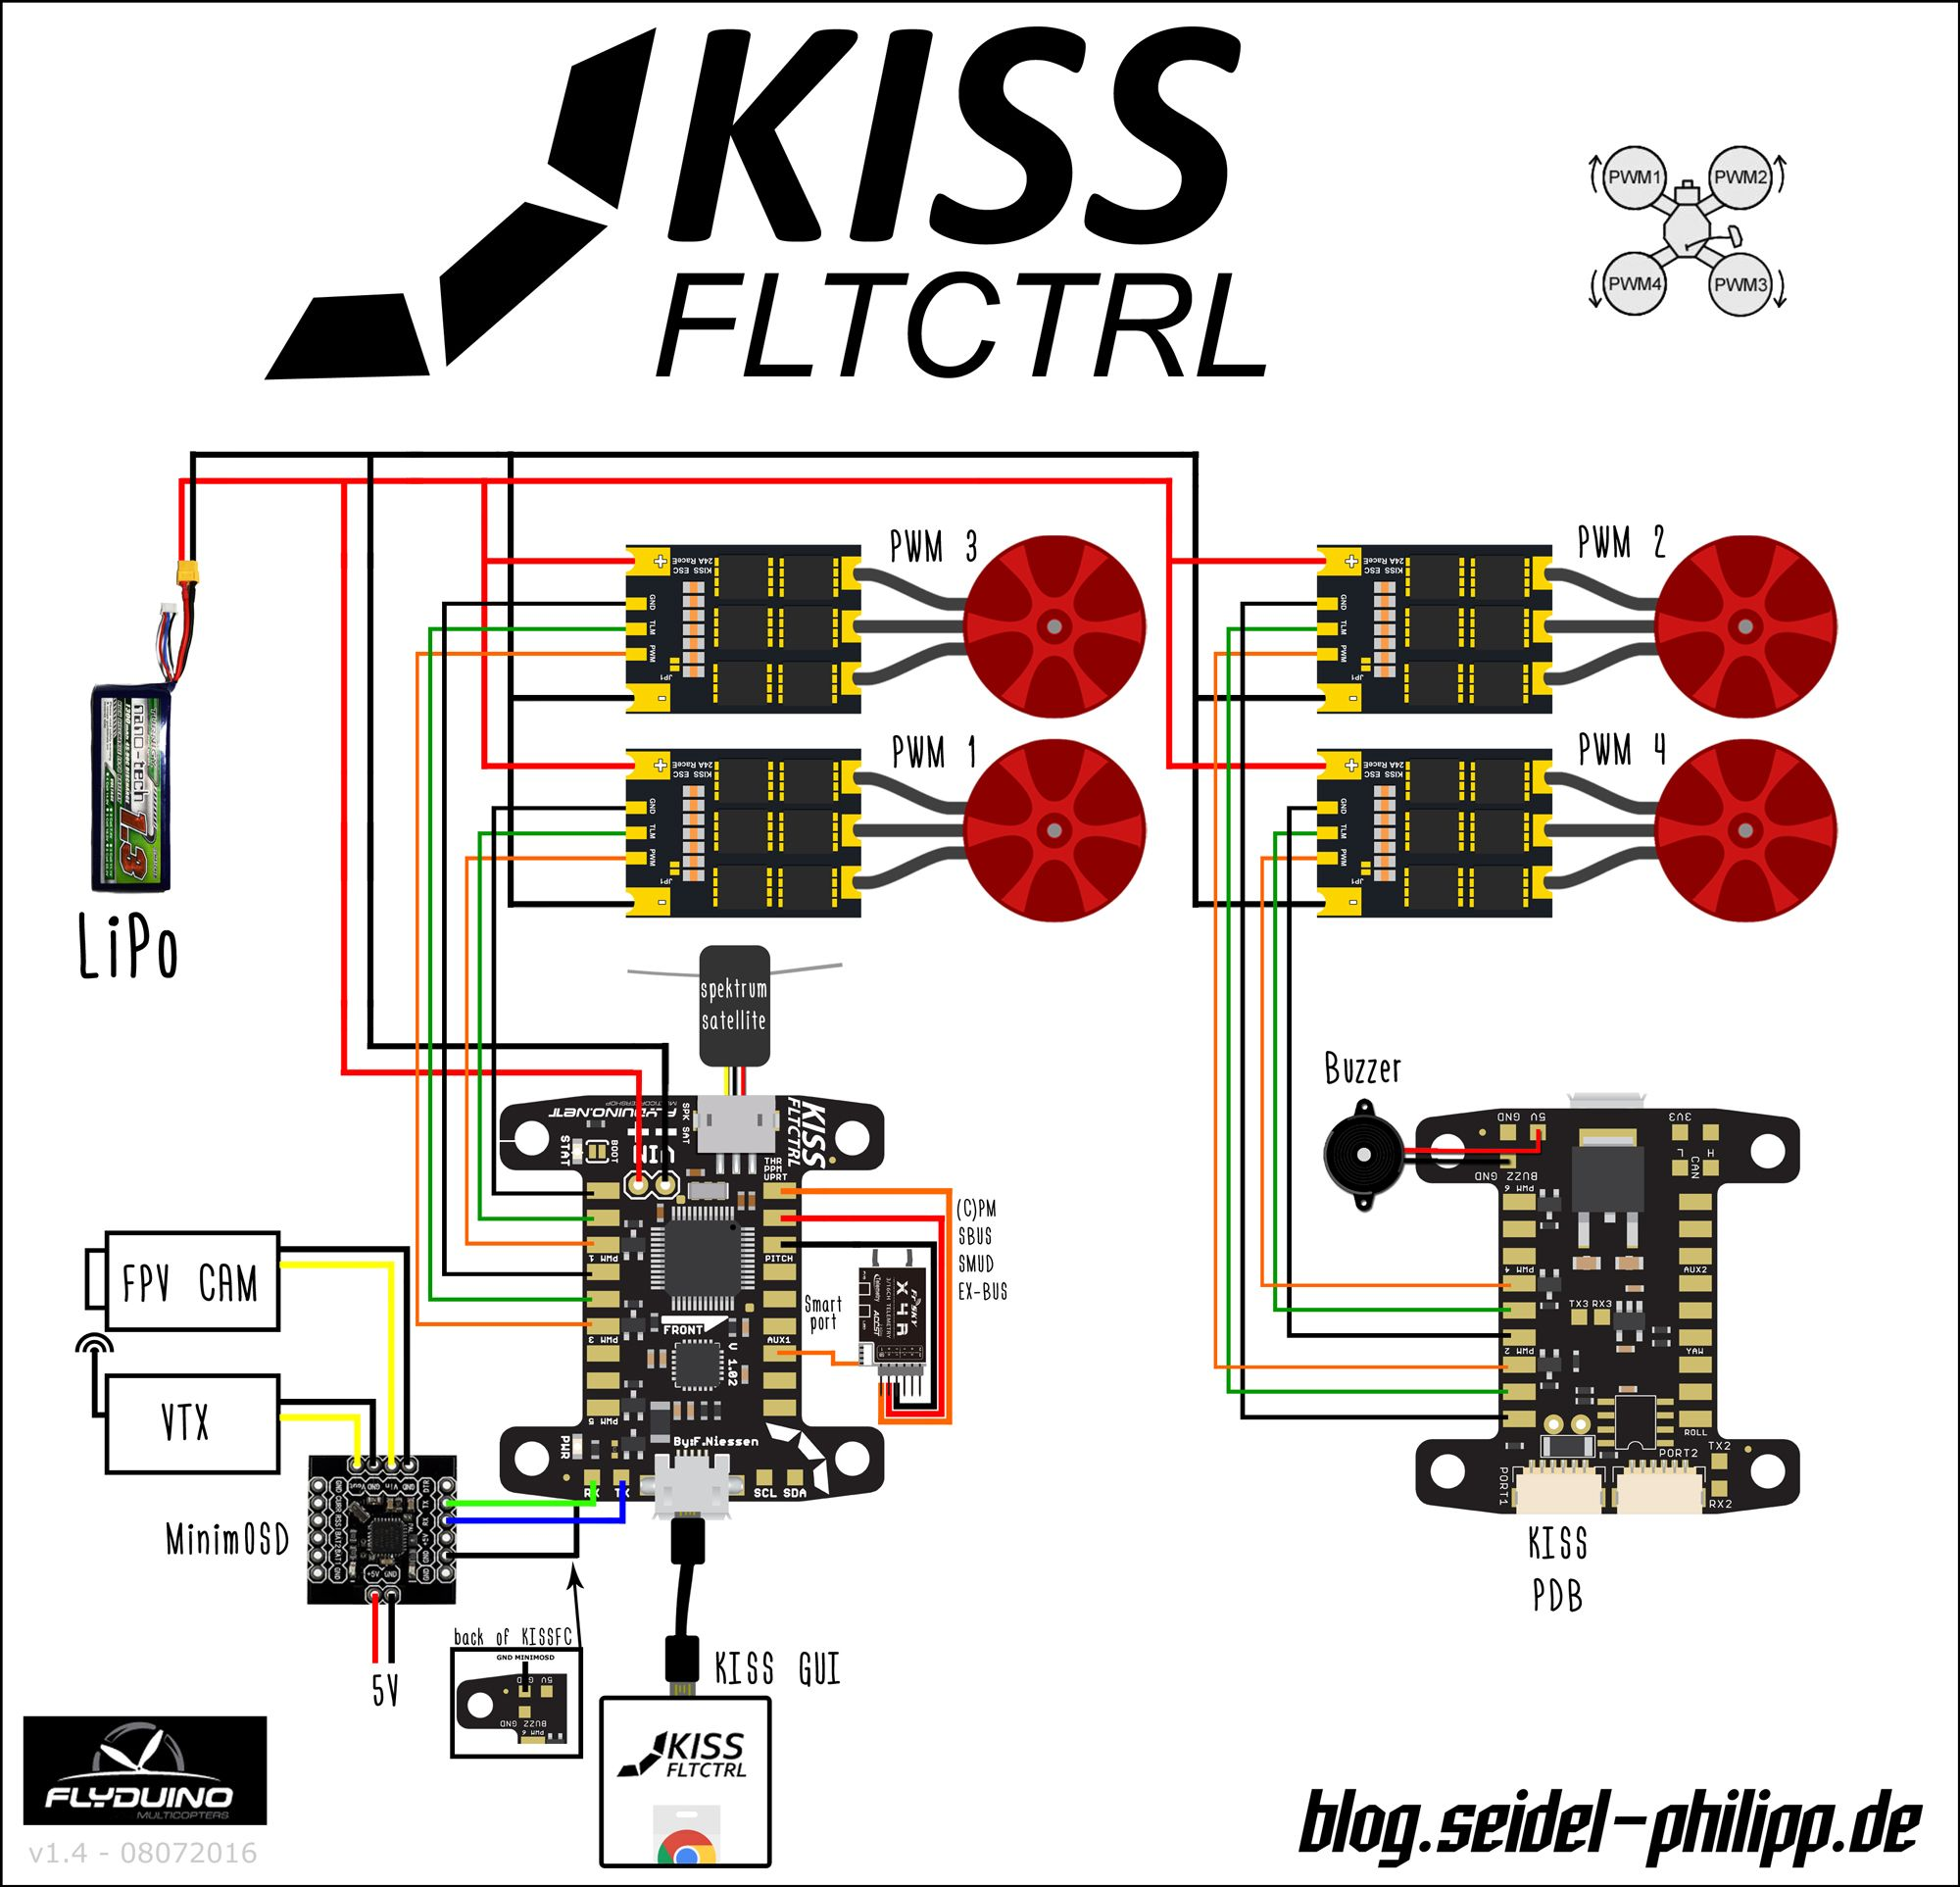 Afror Esc Wiring Diagram - mystery esc wiring diagram ... on